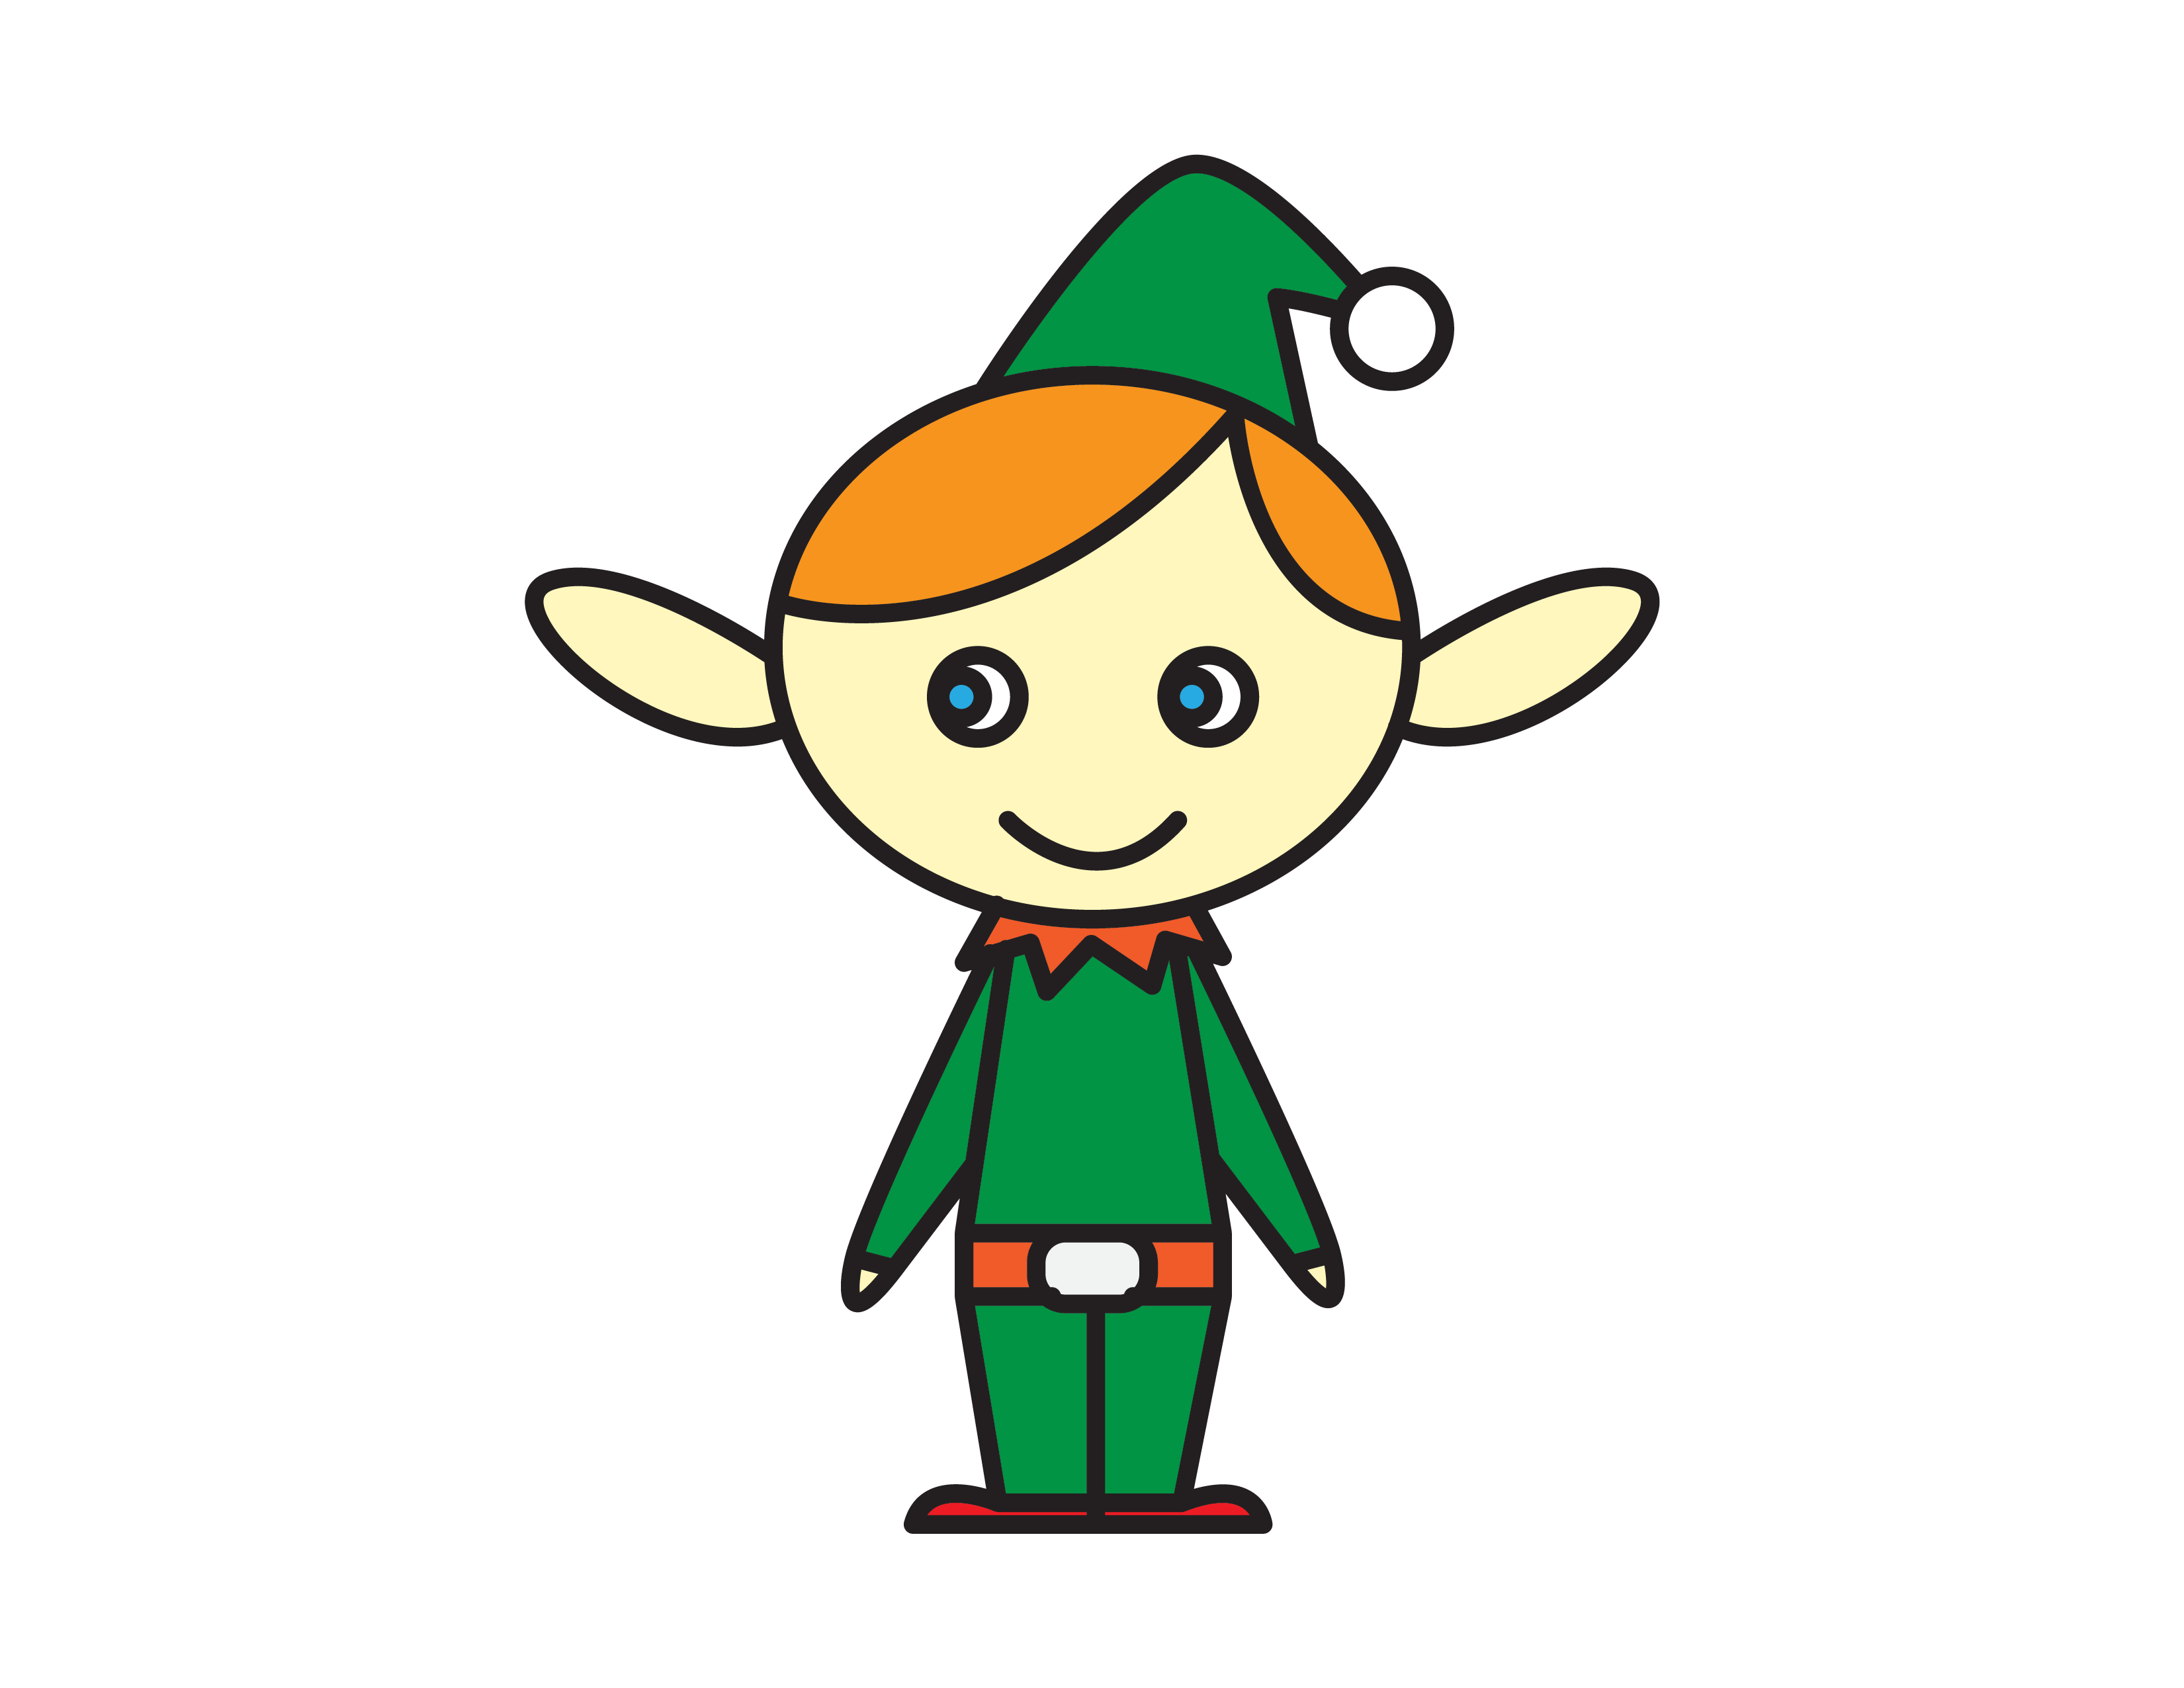 How To Draw a Cheerful Christmas Holiday Elf for Kids